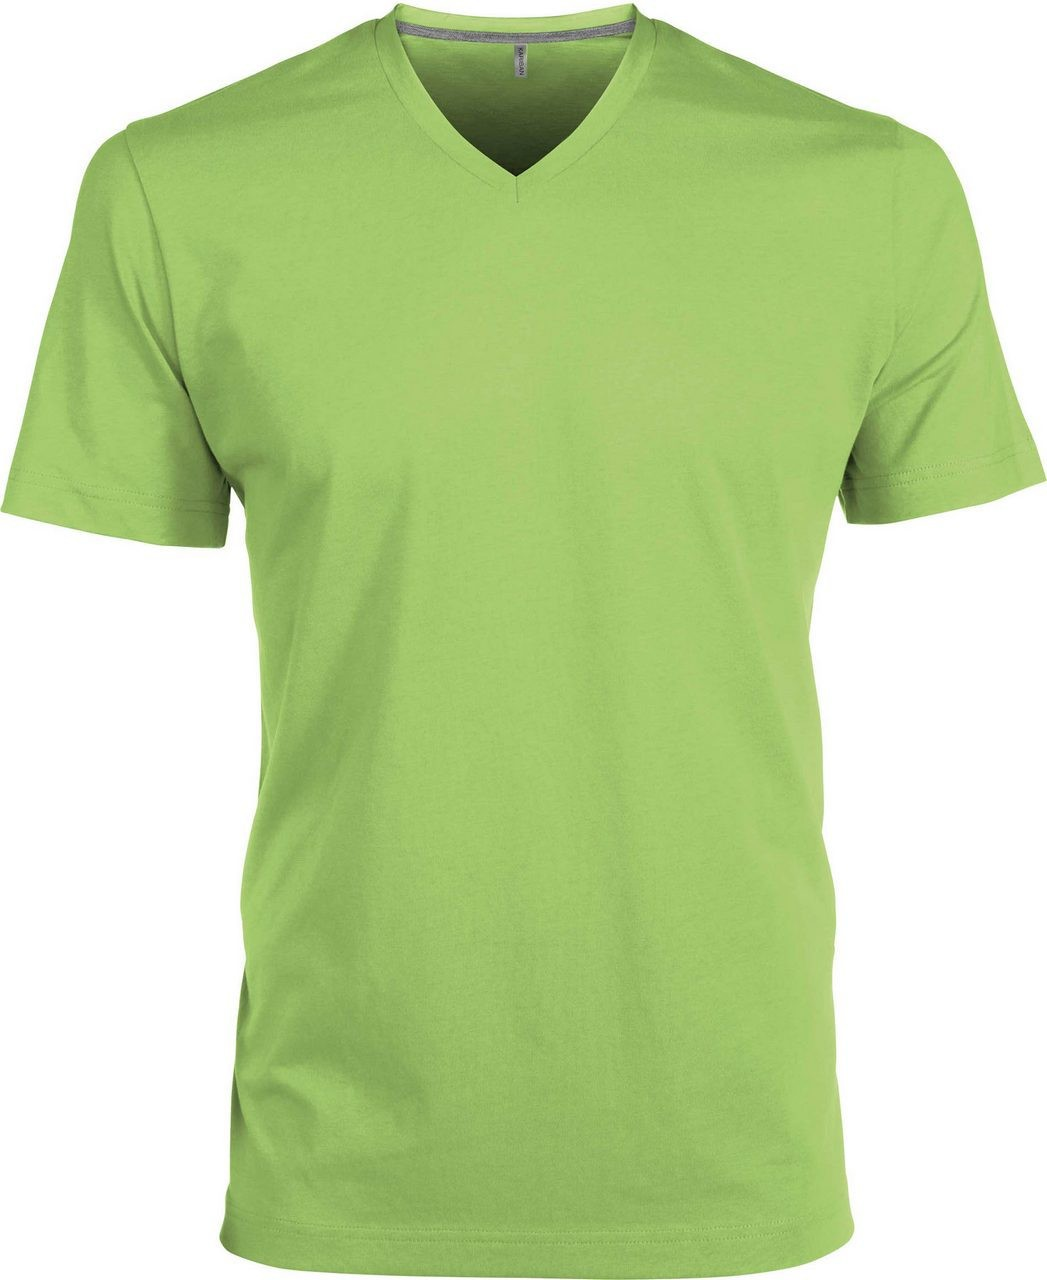 7936f6641c Kariban V-neck T-shirt, Lime, XL (T-shirt, 90-100% cotton ...